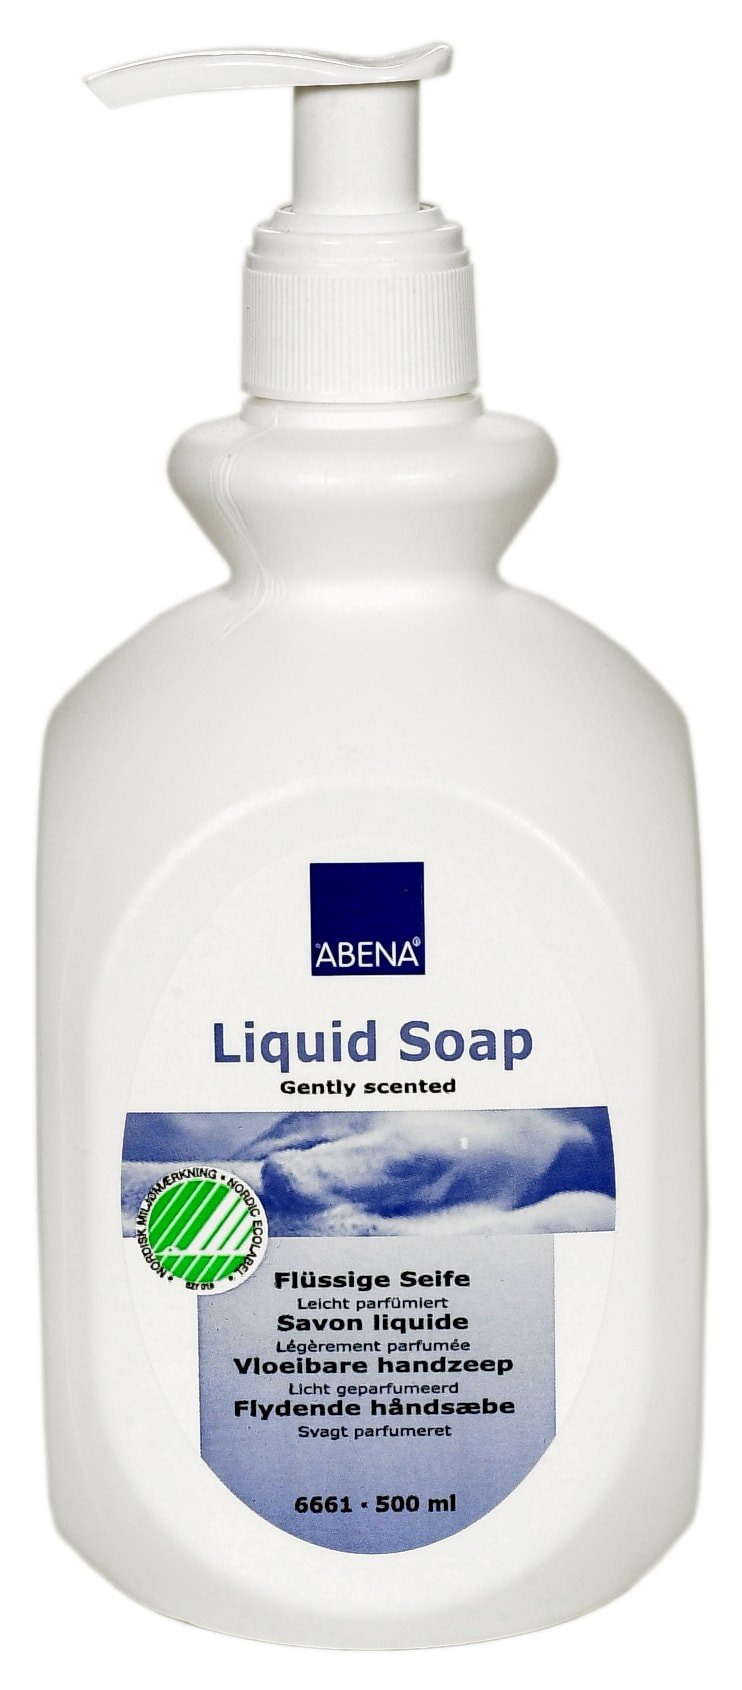 Abena Liquid Soap, Gently Scented, 500 mL, 6661, Case of 12